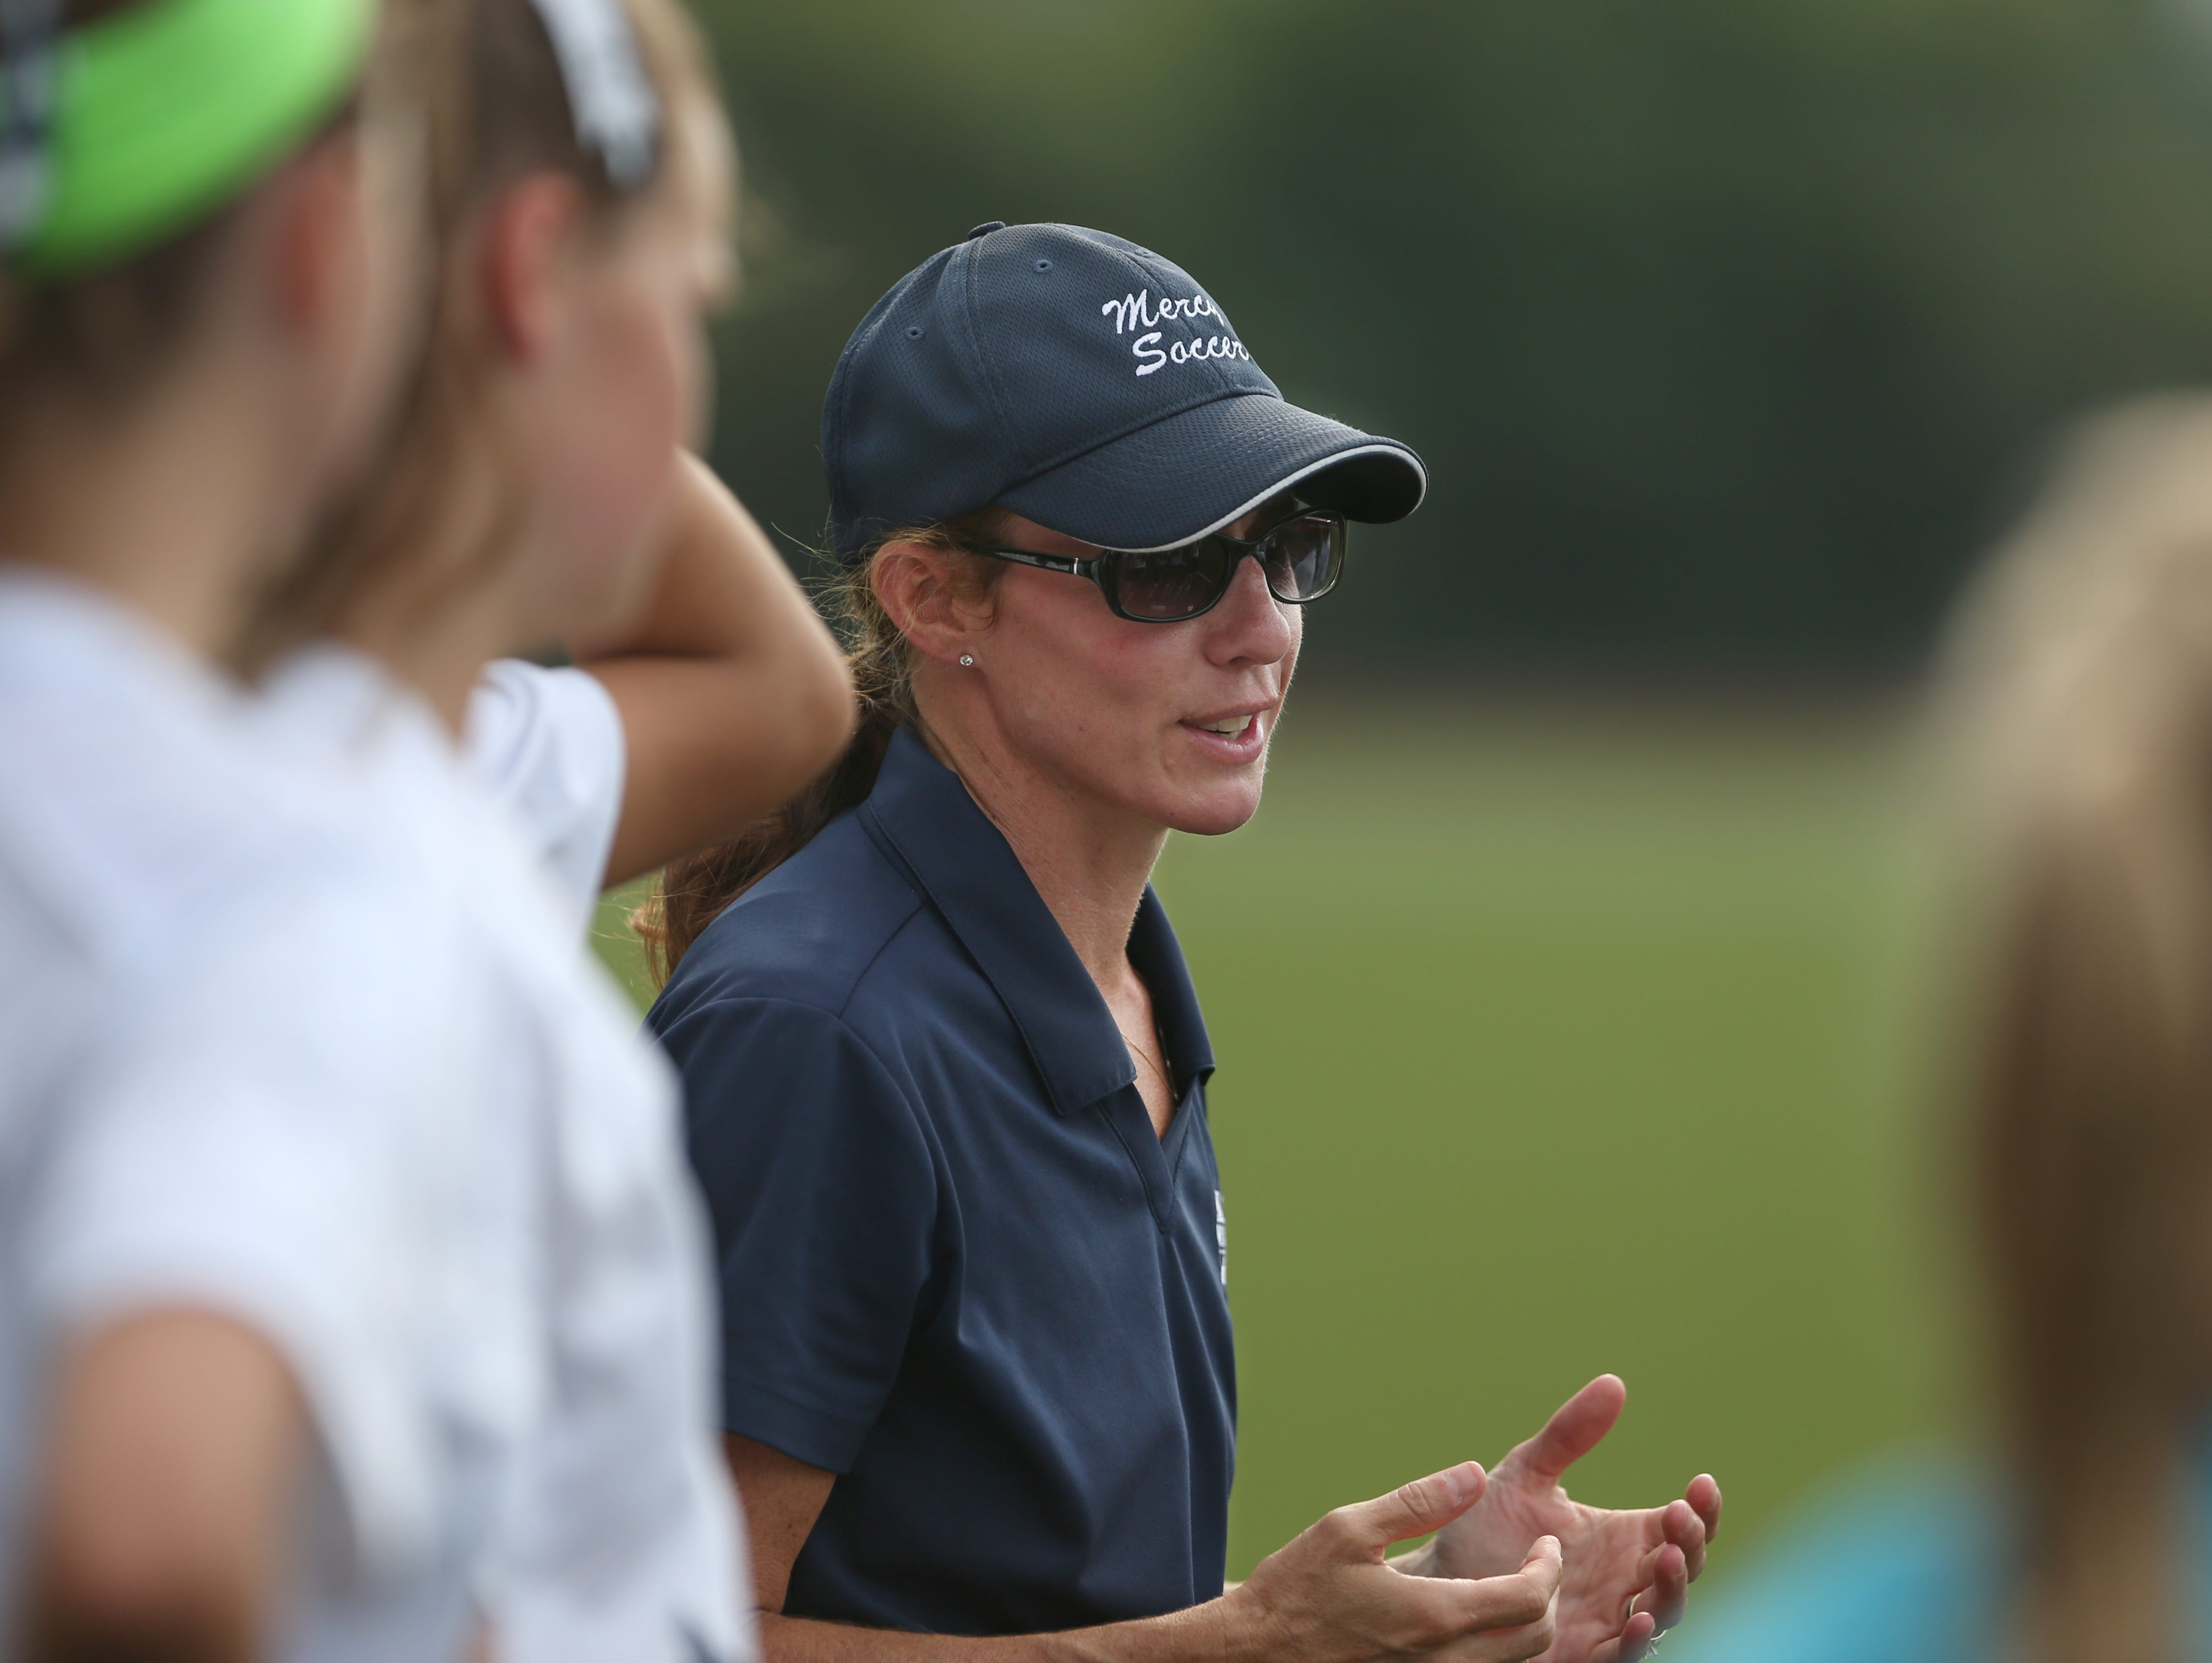 Donna Trost, head coach of Mercy varsity girls soccer, talks to her players before their matchup against Aquinas at Mercy High Tuesday, Sept. 8, 2015 in Brighton.